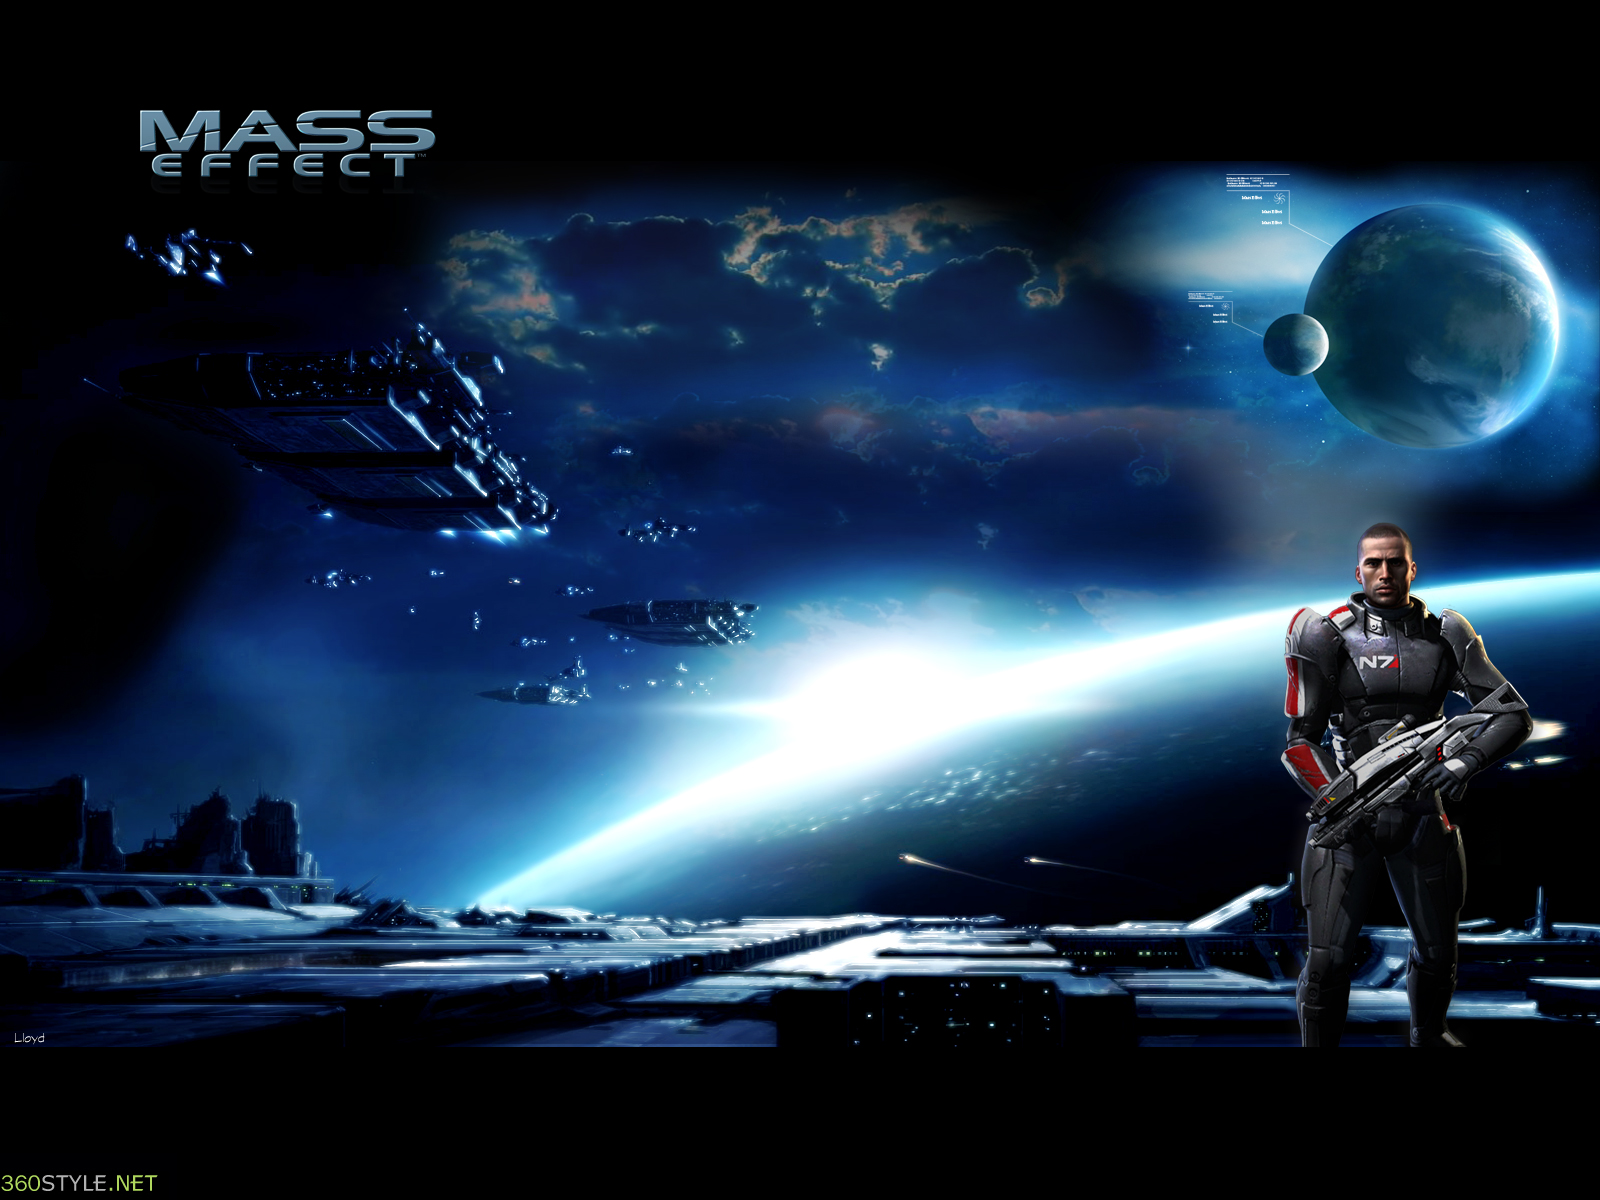 http://1.bp.blogspot.com/-6iSALKkQ18s/Th7mif2zlPI/AAAAAAAAGEs/Yv9X8MpBVCc/s1600/mass-effect-2-game-wallpaper-6.jpg